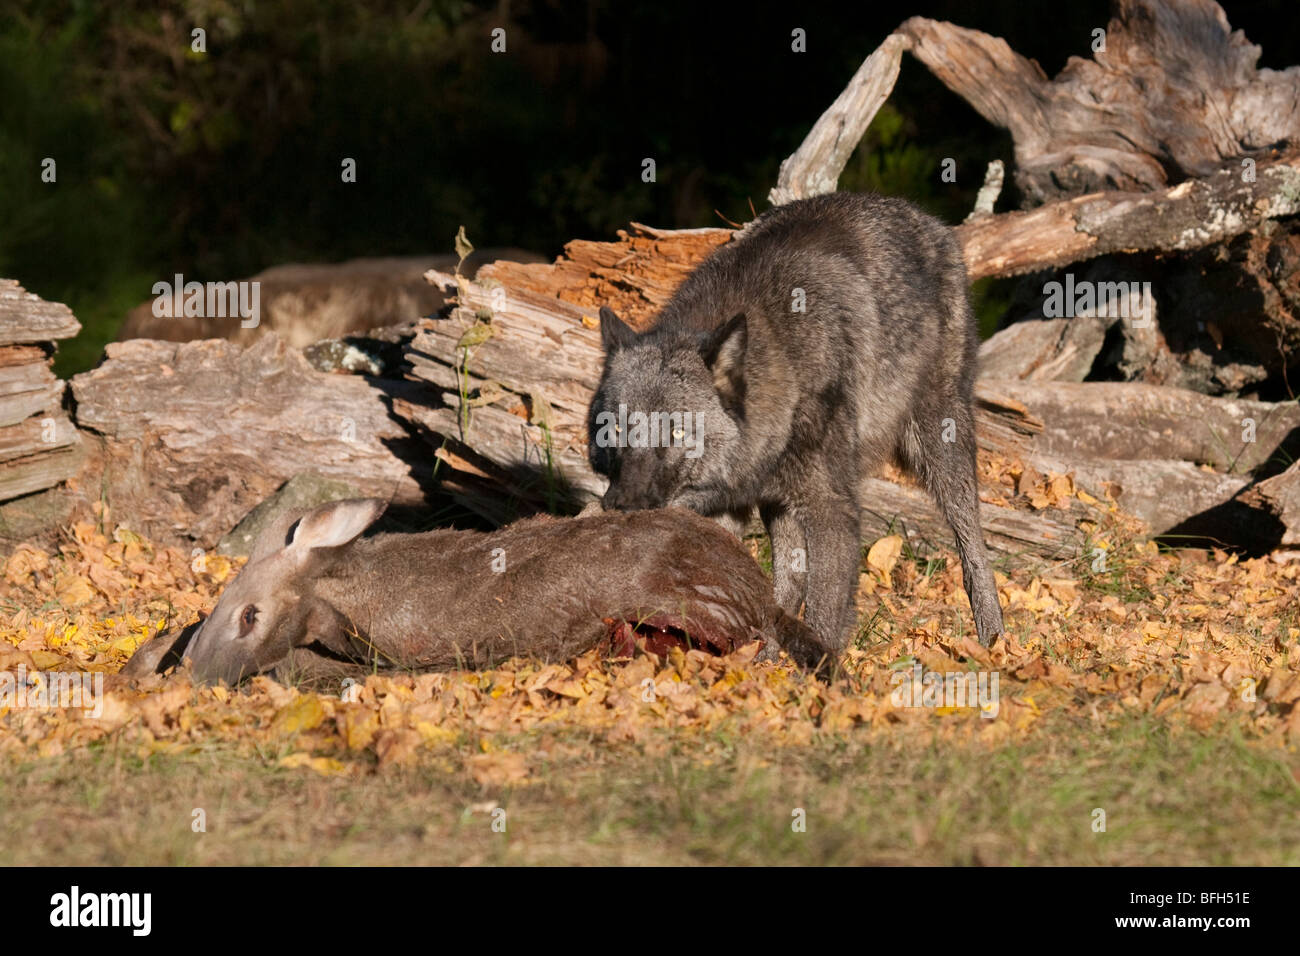 Timber or gray wolf with a deer carcass. - Stock Image